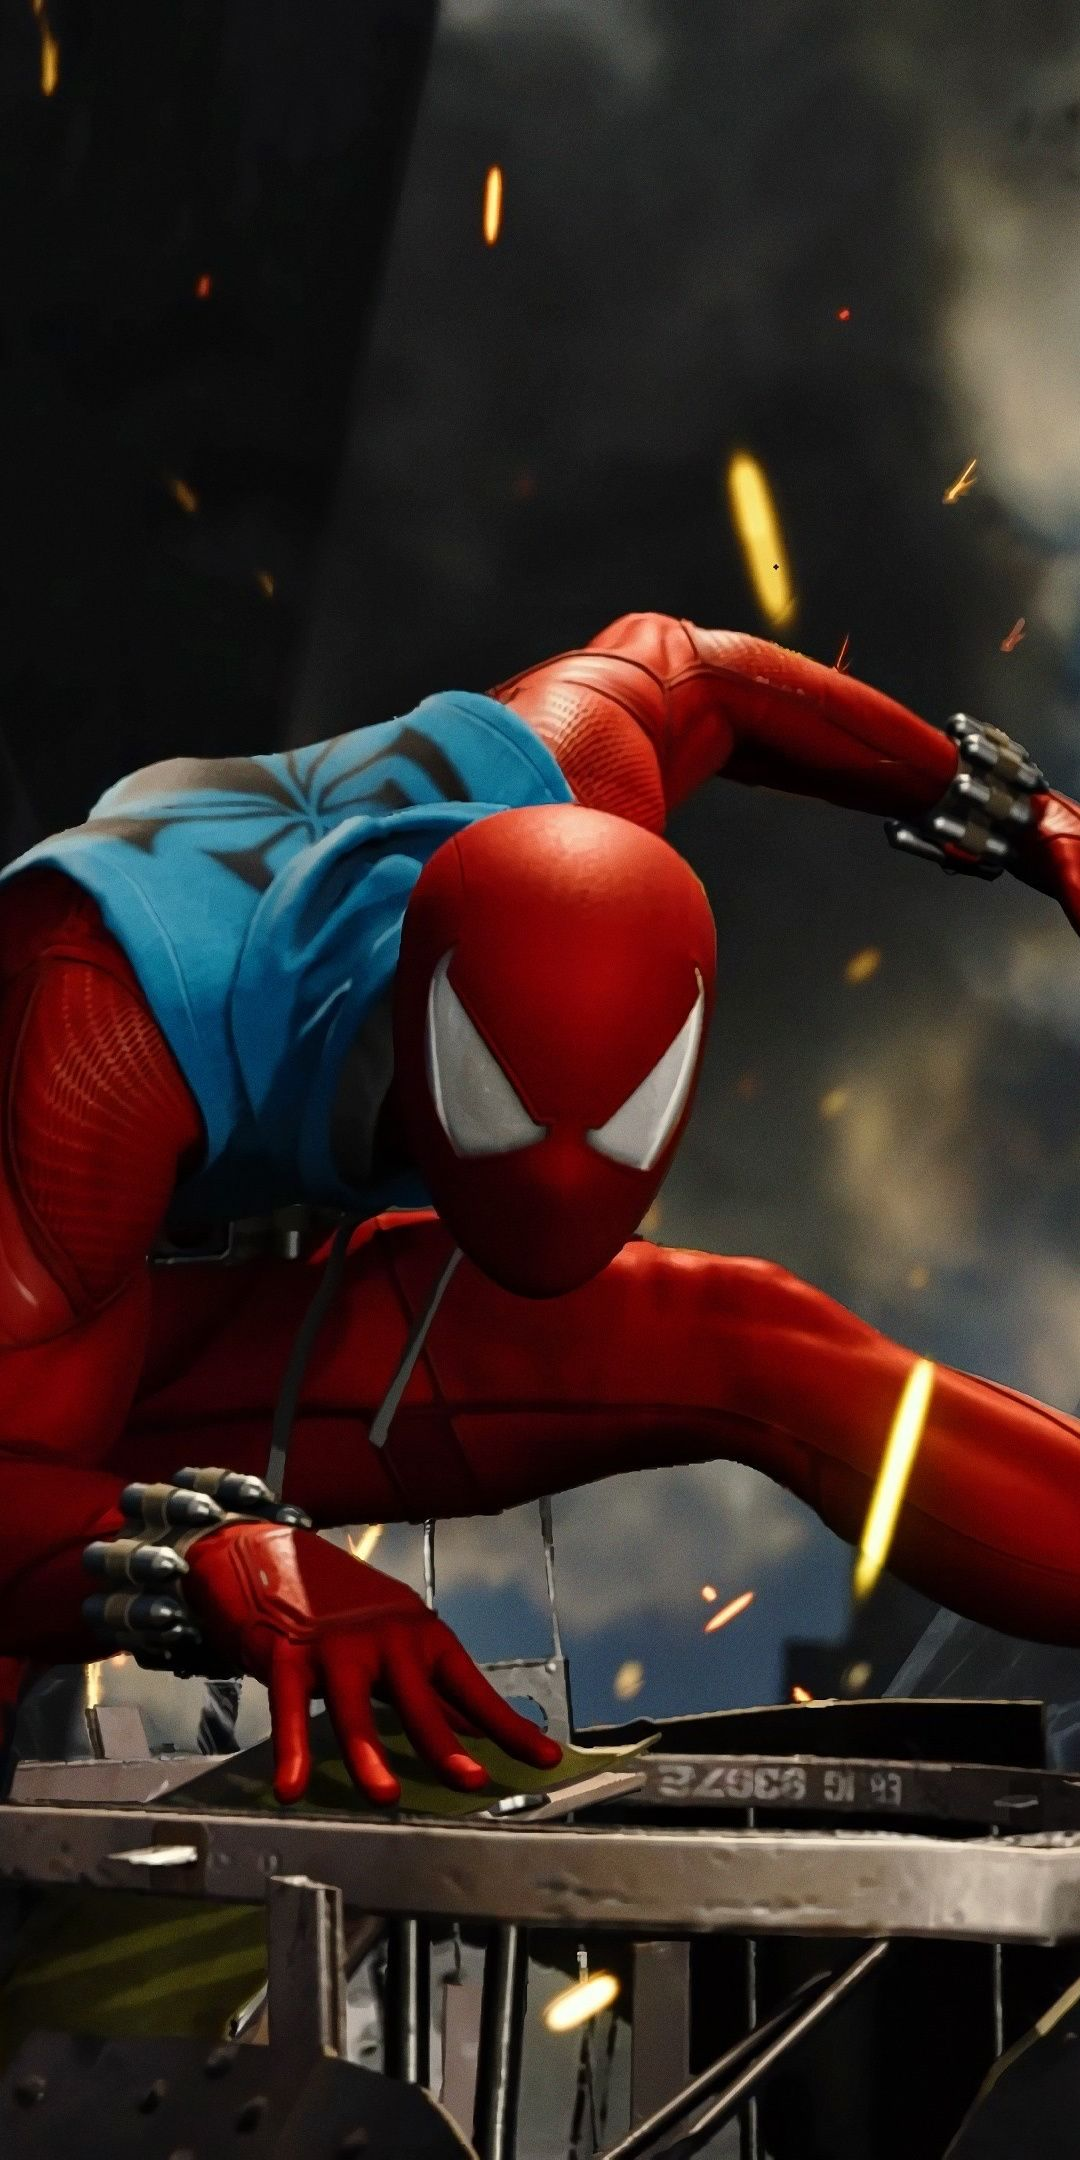 Scarlet Spider Video Game Ps4 Game 1080x2160 Wallpaper Scarlet Spider Spiderman Scarlet Spider Ben Reilly